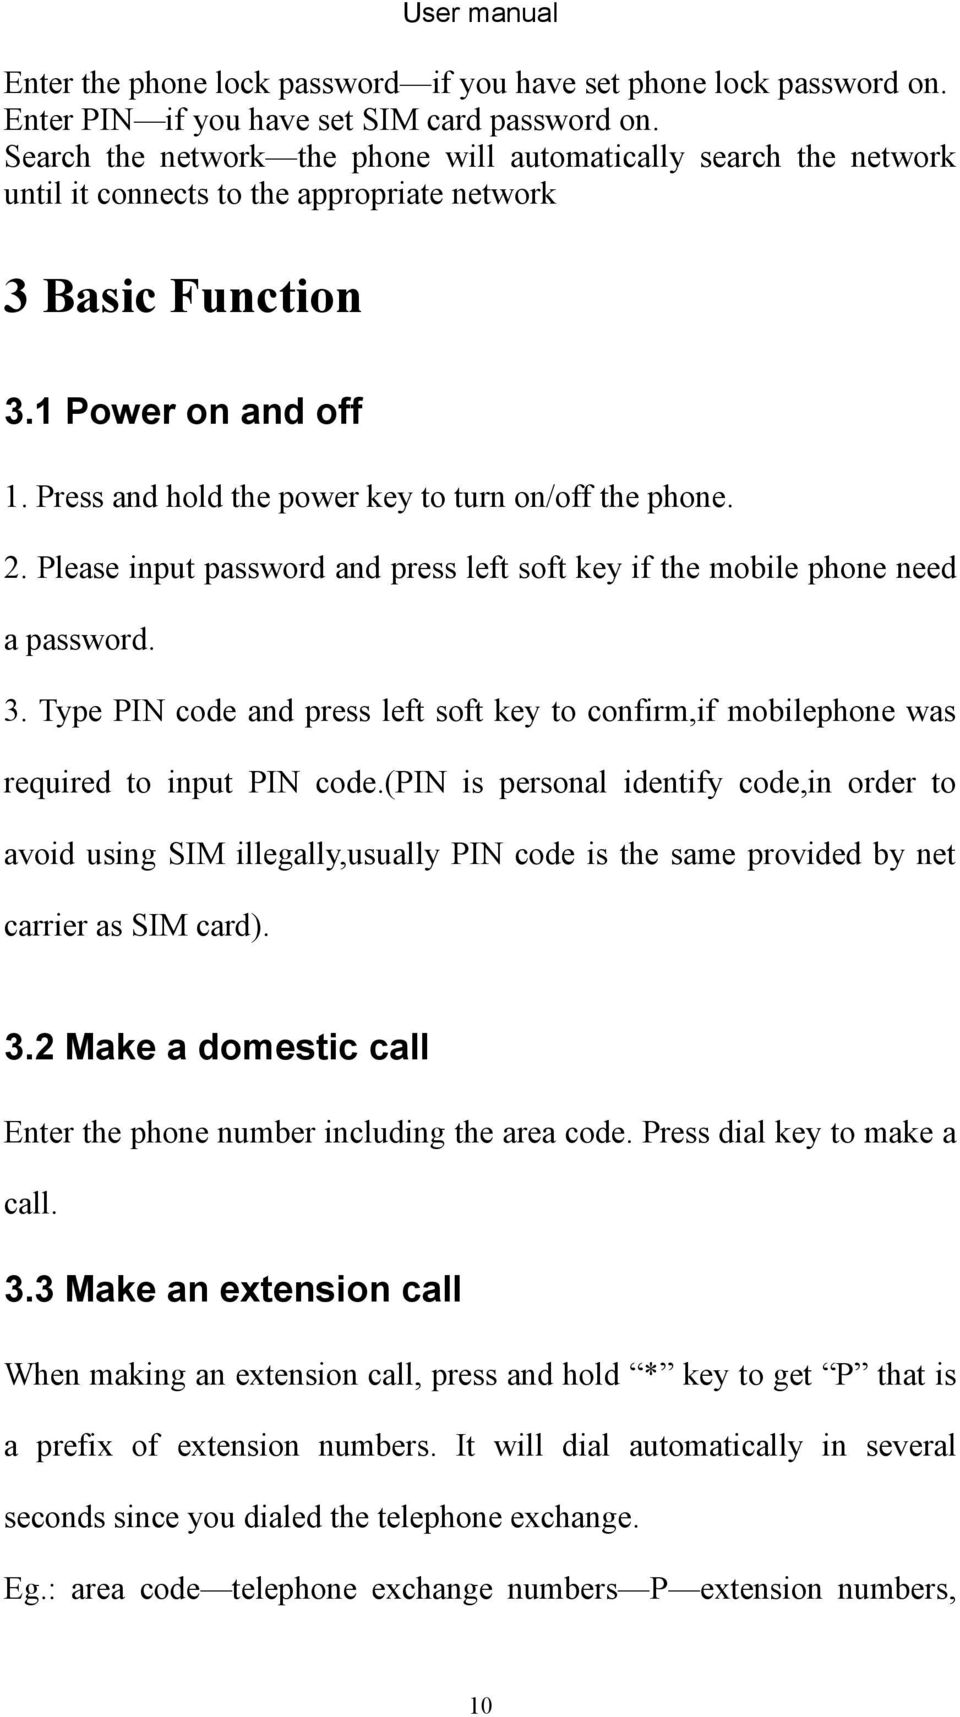 Press and hold the power key to turn on/off the phone. 2. Please input password and press left soft key if the mobile phone need a password. 3.